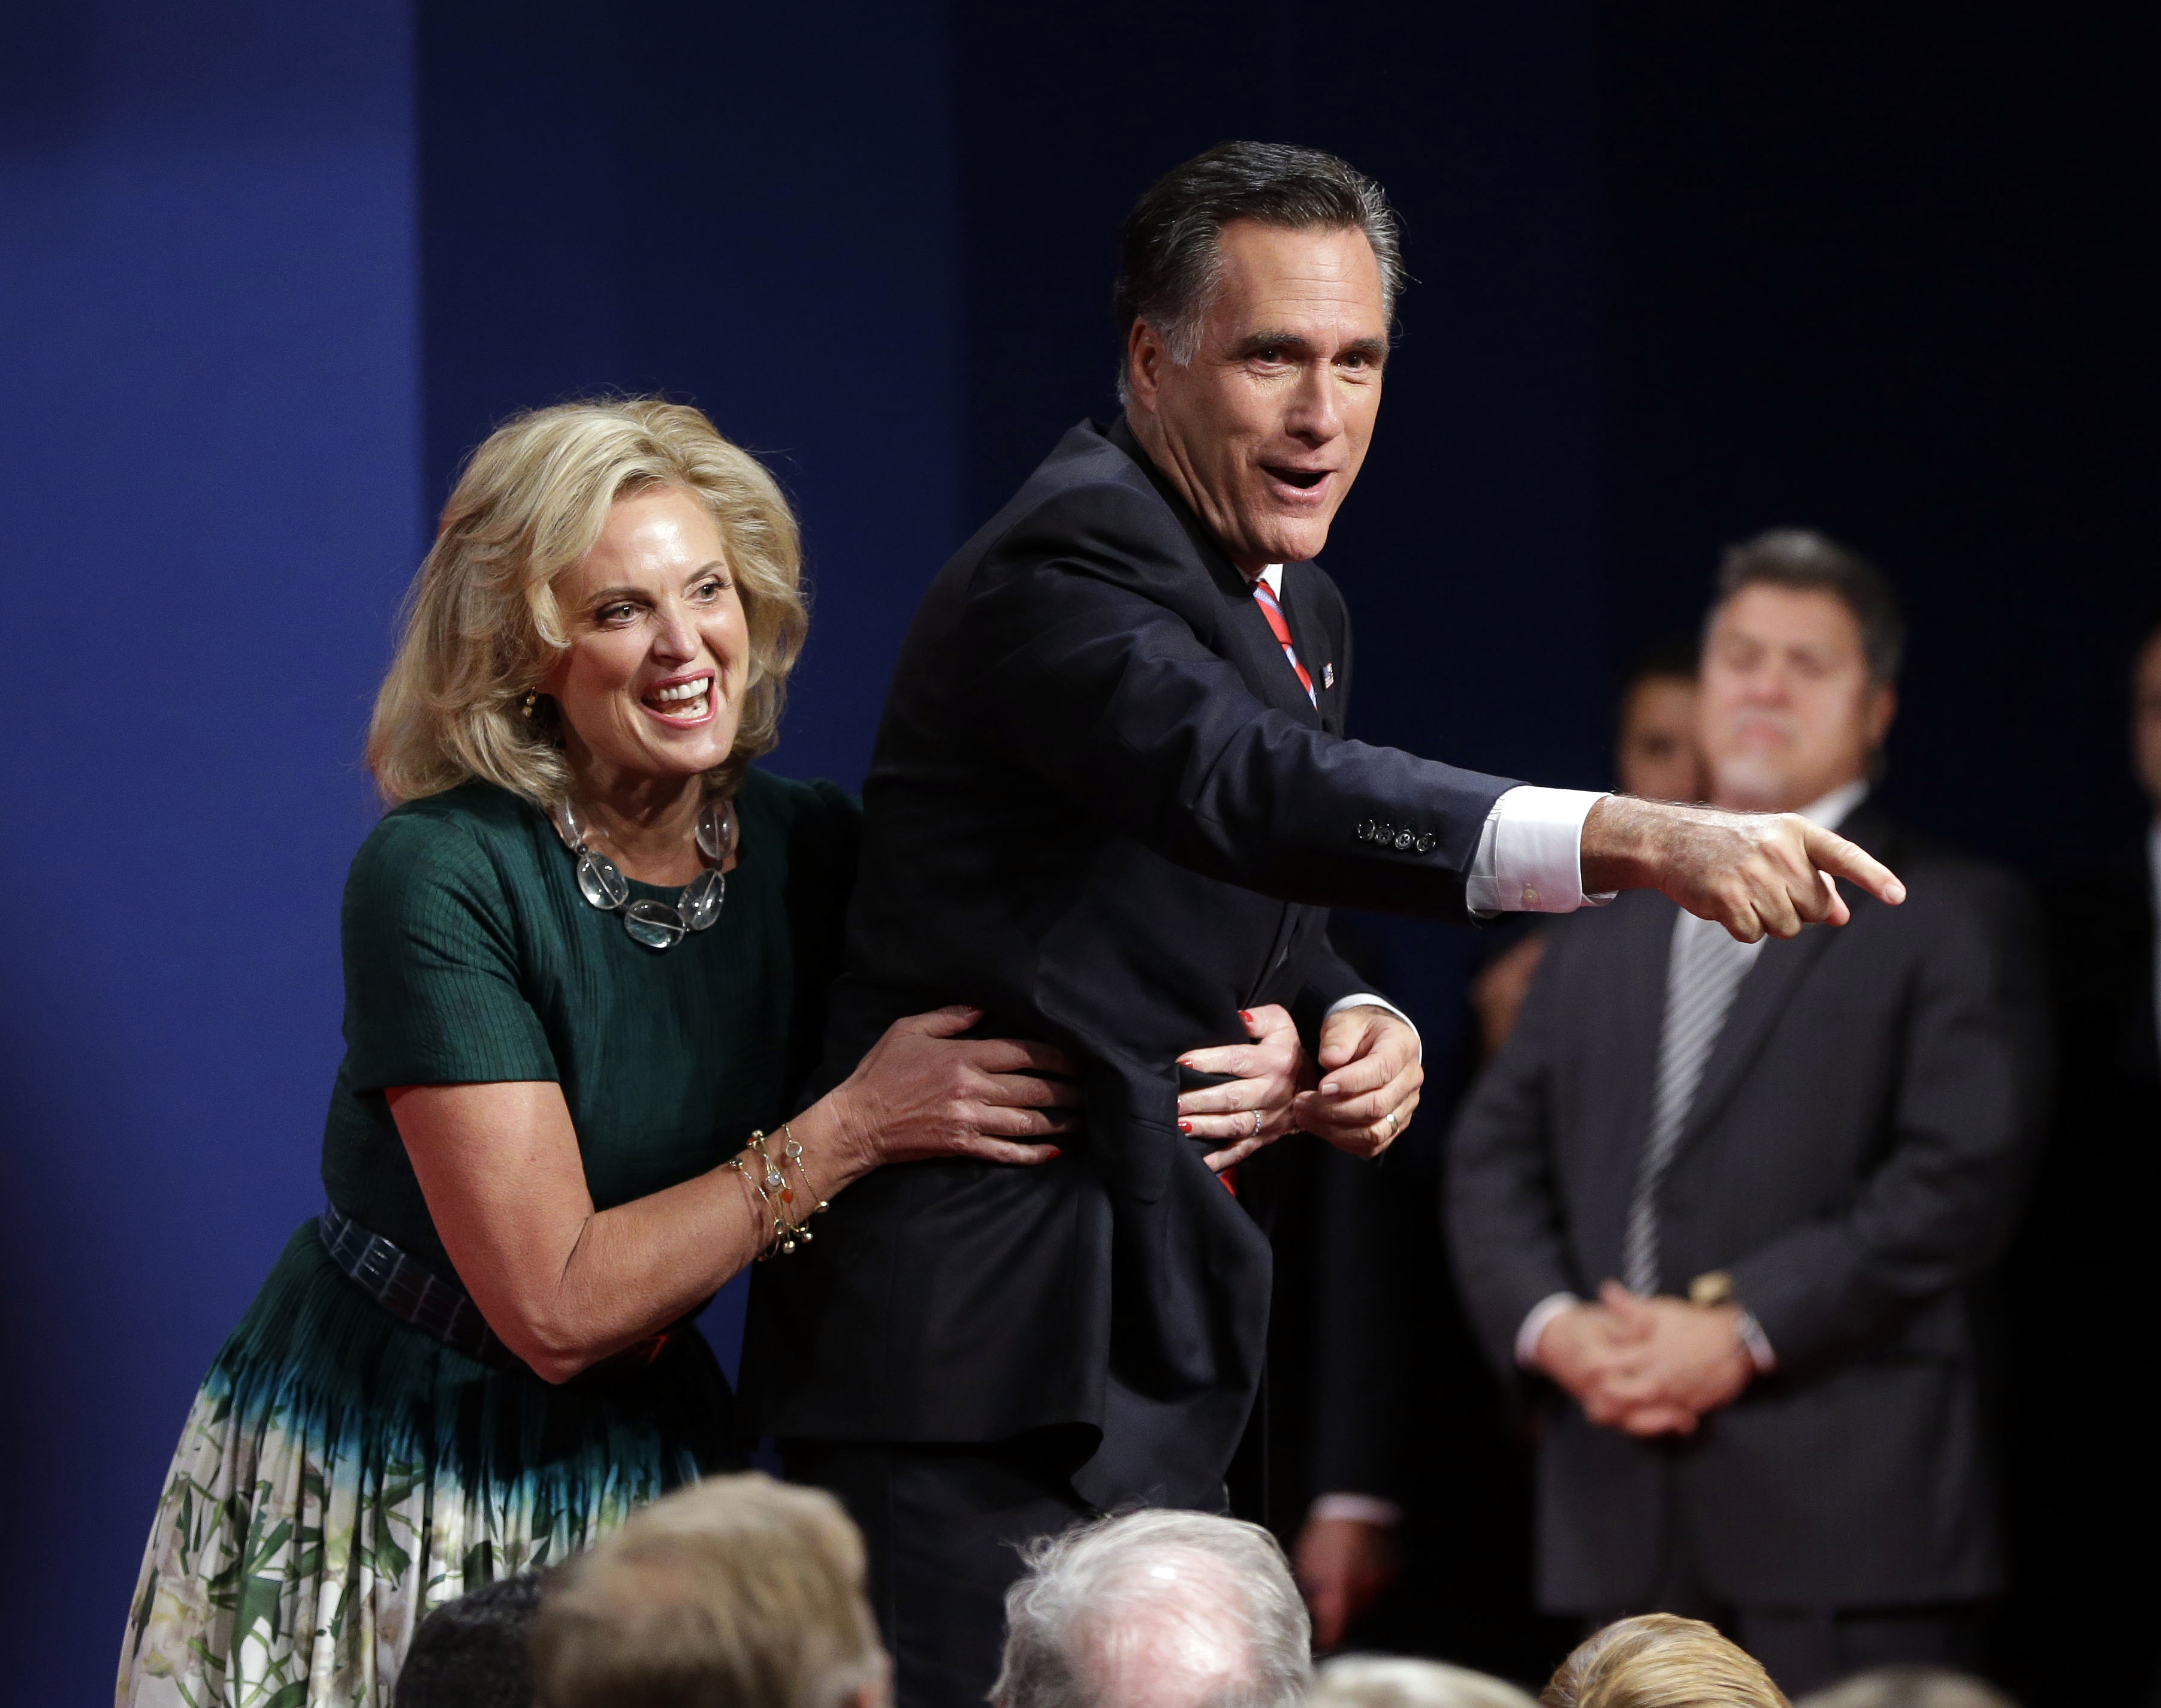 Romney, pictured after the third presidential debate, is neck-and-neck with Obama in the US polls (PA)